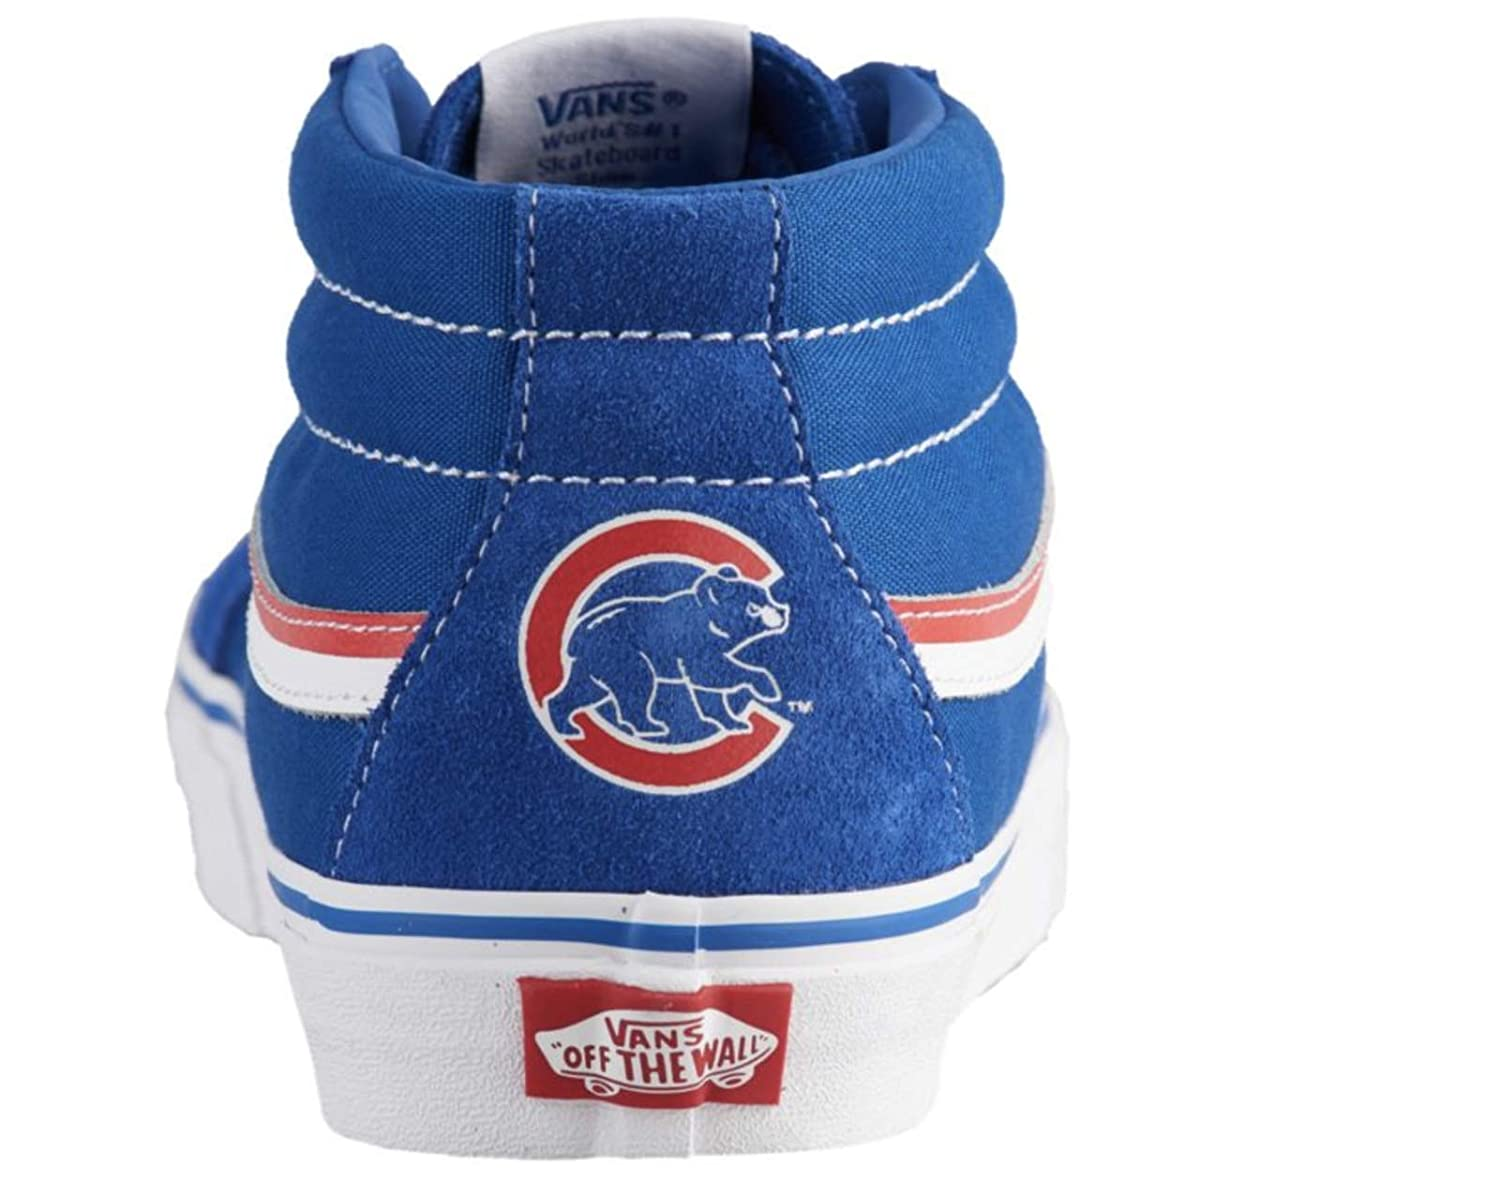 23dcd7d4c1 Amazon.com  Vans SK8 Mid Reissue Chicago Cubs MLB Baseball Red Blue White  Size Mens 5.5 Womens 7 Limited New  Shoes